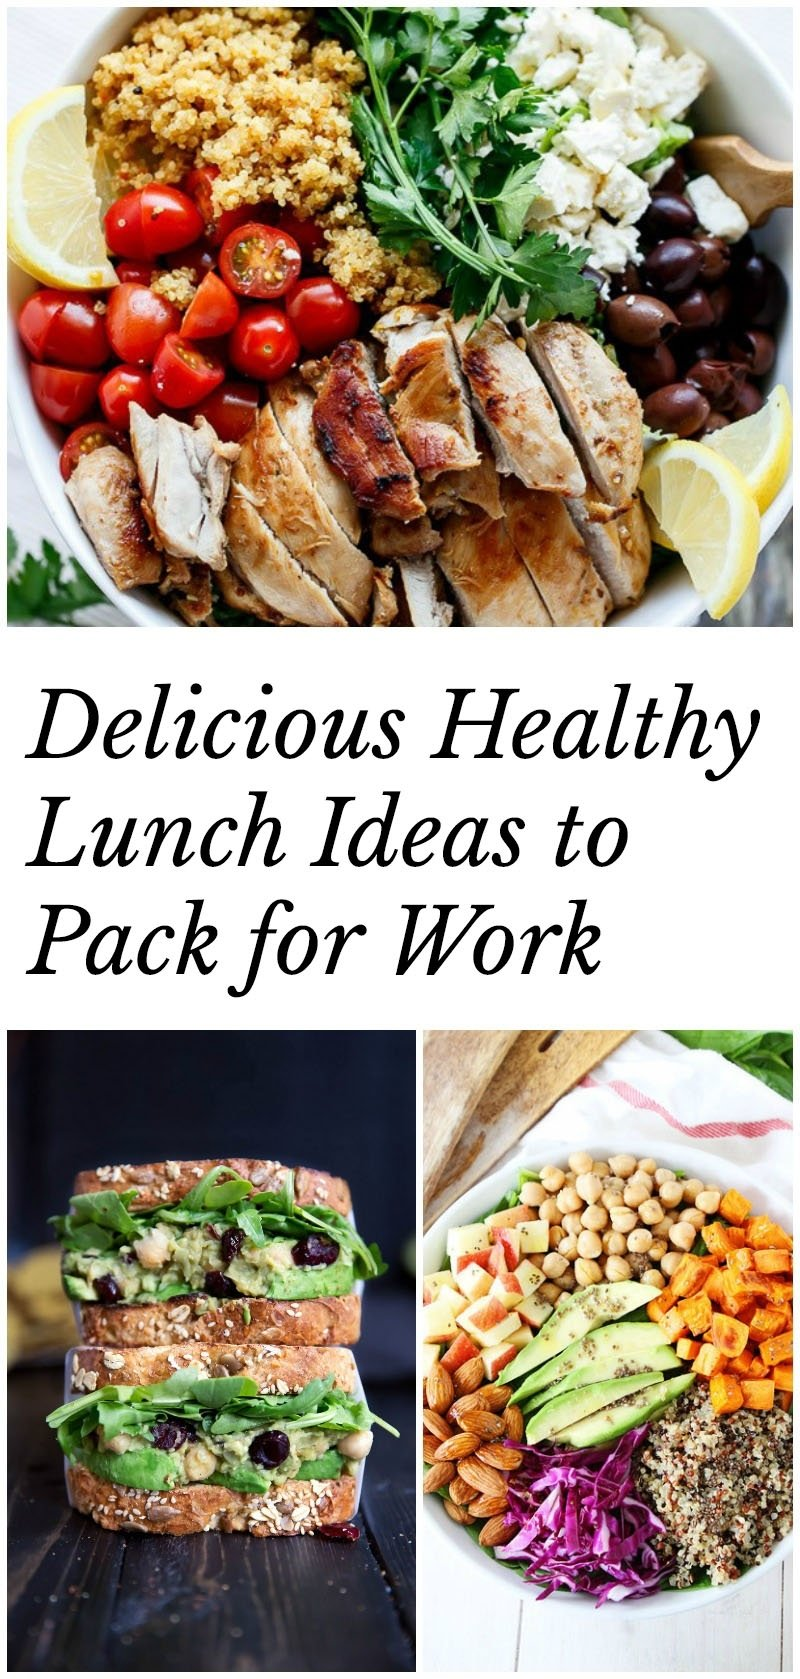 10 Elegant Diet Lunch Ideas For Work healthy lunch ideas to pack for work 40 recipes 18 2020